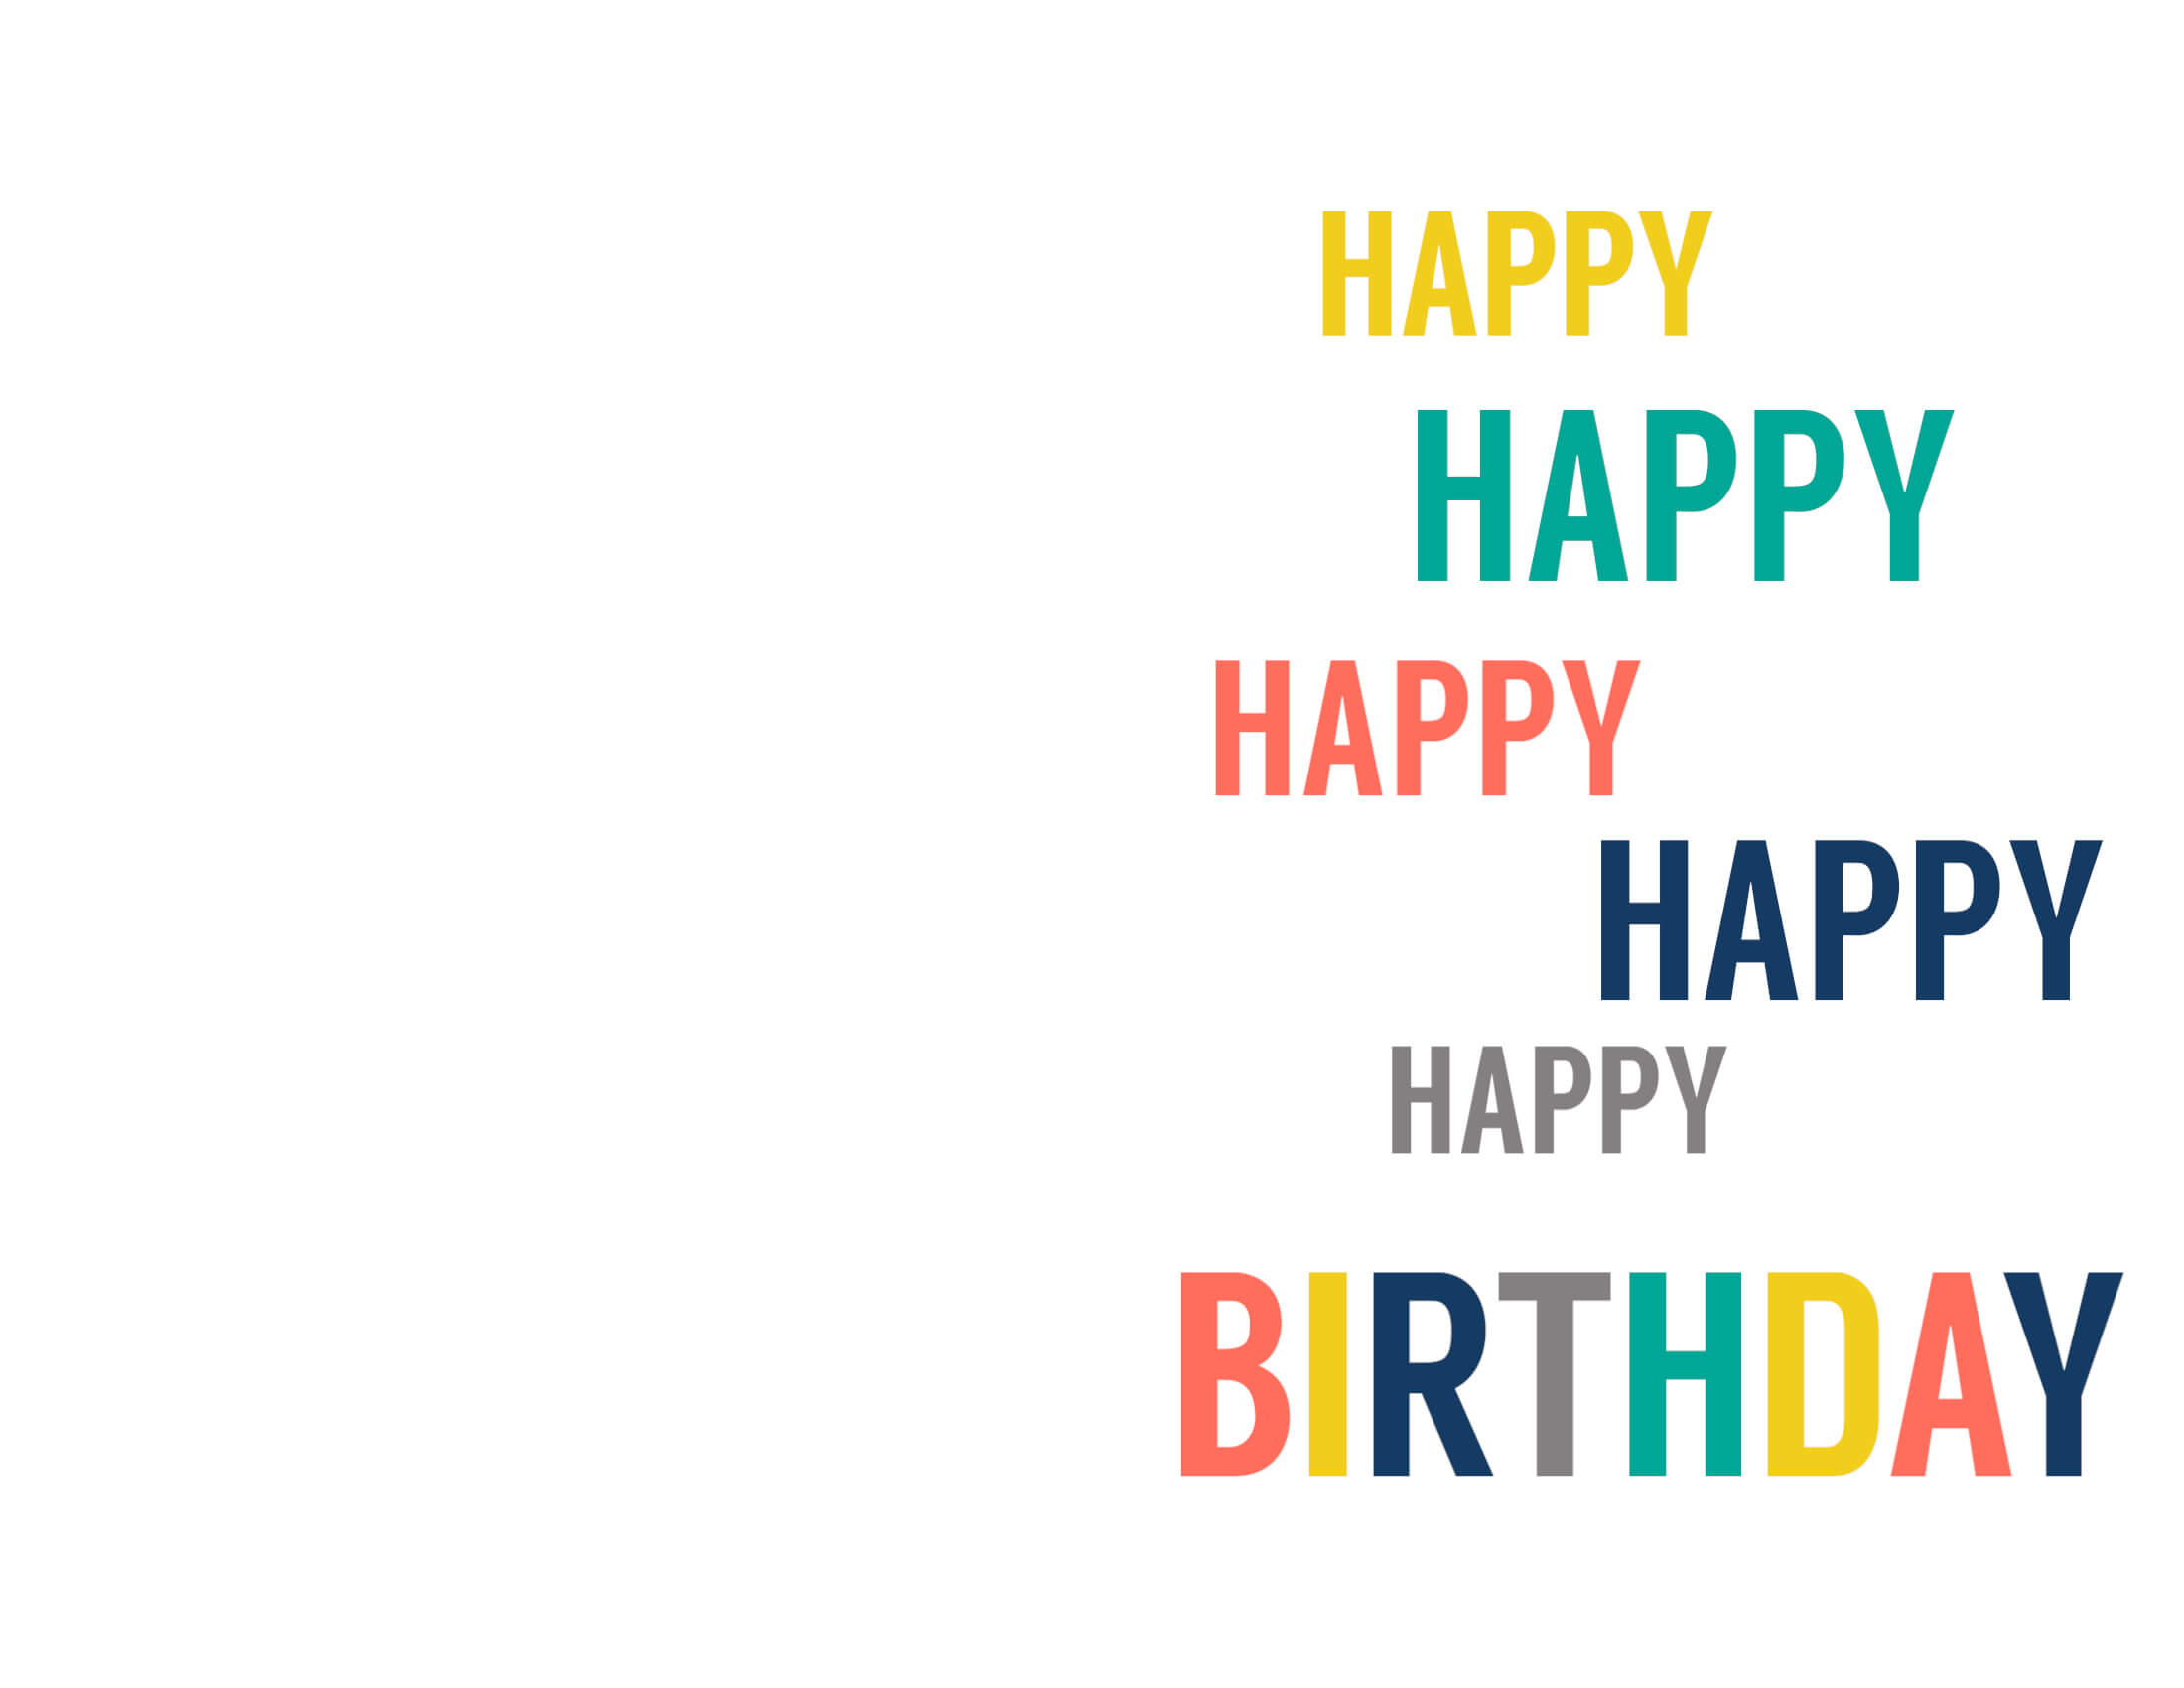 Birthday Cards Templates To Print - Calep.midnightpig.co Within Template For Cards To Print Free